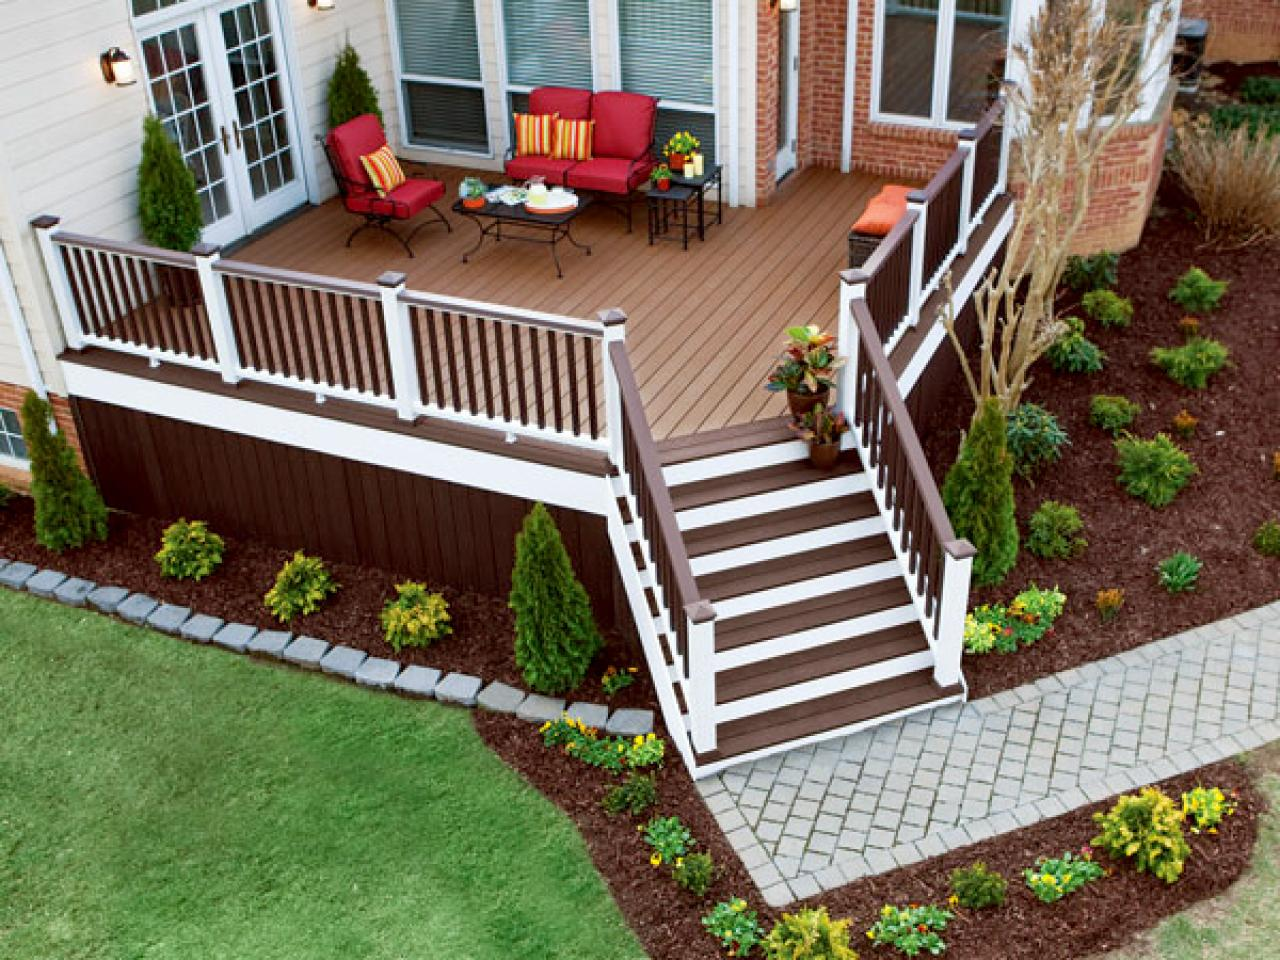 Accessing your deck hgtv Deck design ideas